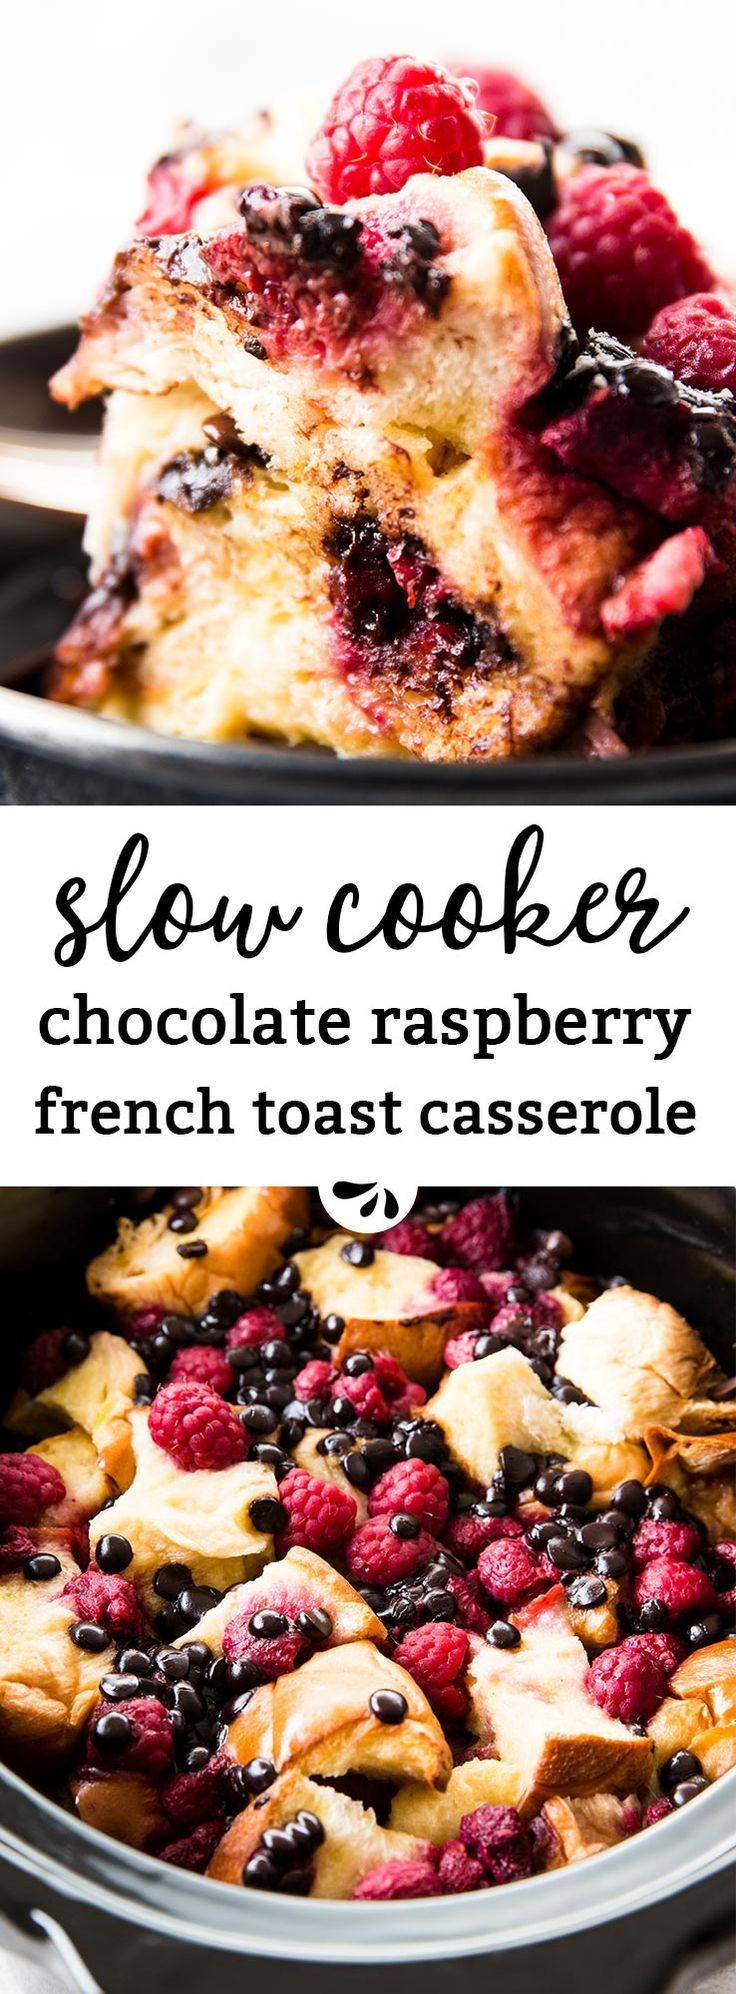 This Crockpot Raspberry Chocolate Chip French Toast Casserole is a simple brunch dish that feels extra special. So decadent with the chocolate and raspberries! (Chocolate Chip Waffles)